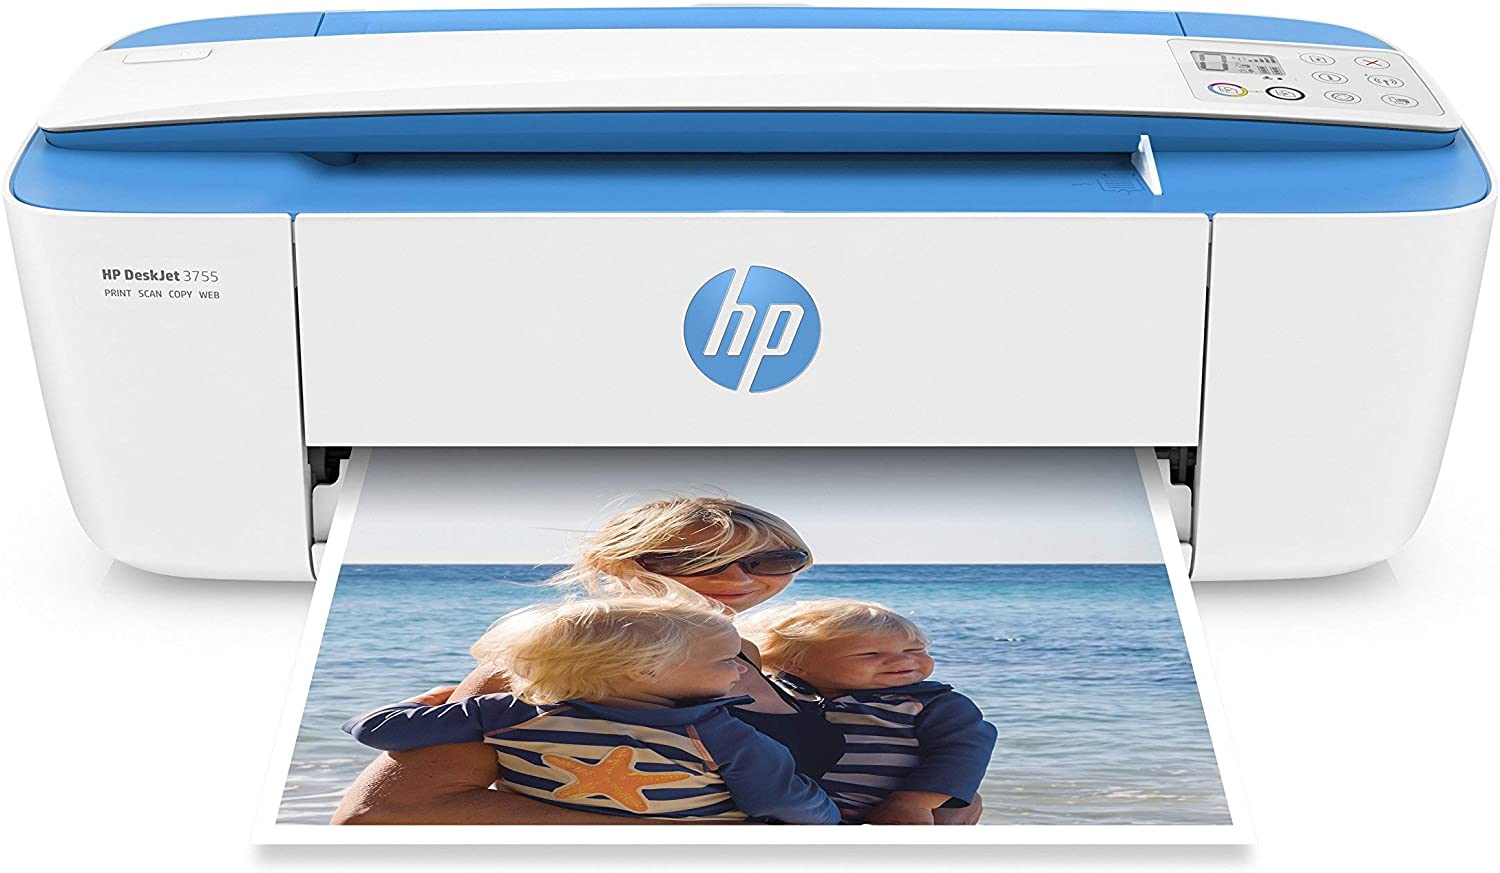 HP DeskJet 3755 Compact All-in-One Wireless Printer with Mobile Printing, HP Instant Ink & Amazon Dash Replenishment ready - Blue Accent (J9V90A) (Renewed)